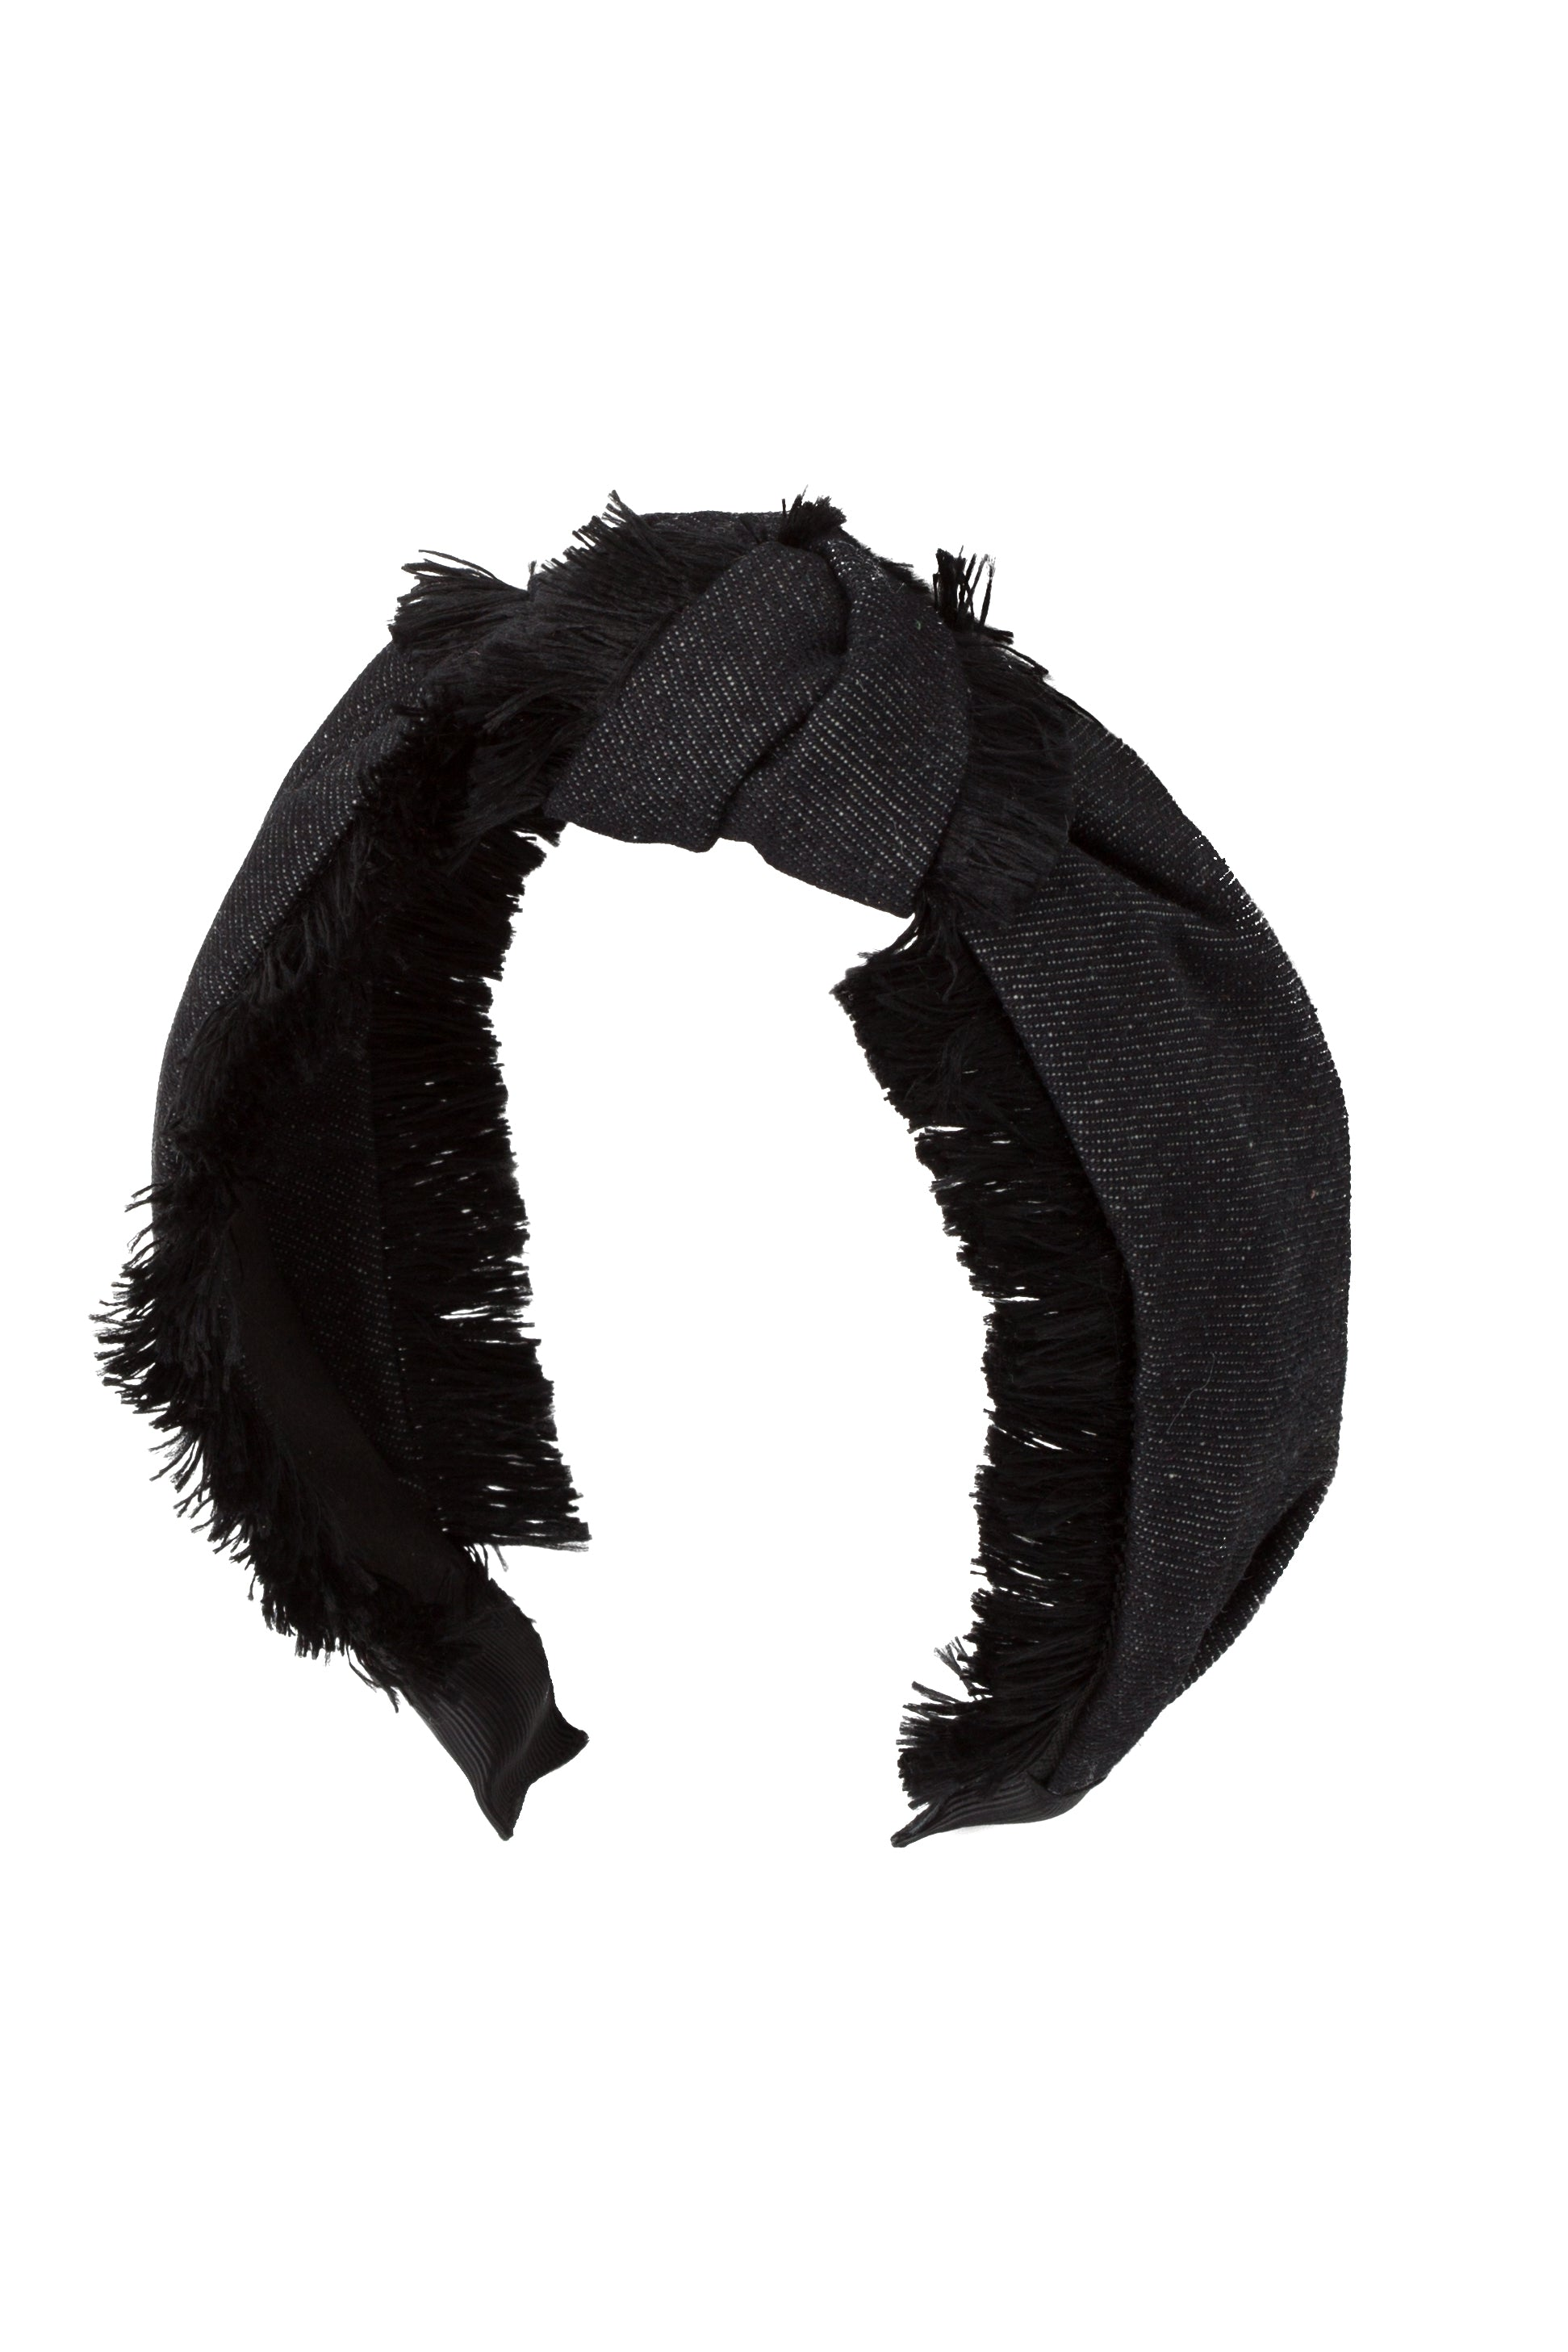 Knot Fringe Headband - Black Denim - PROJECT 6, modest fashion